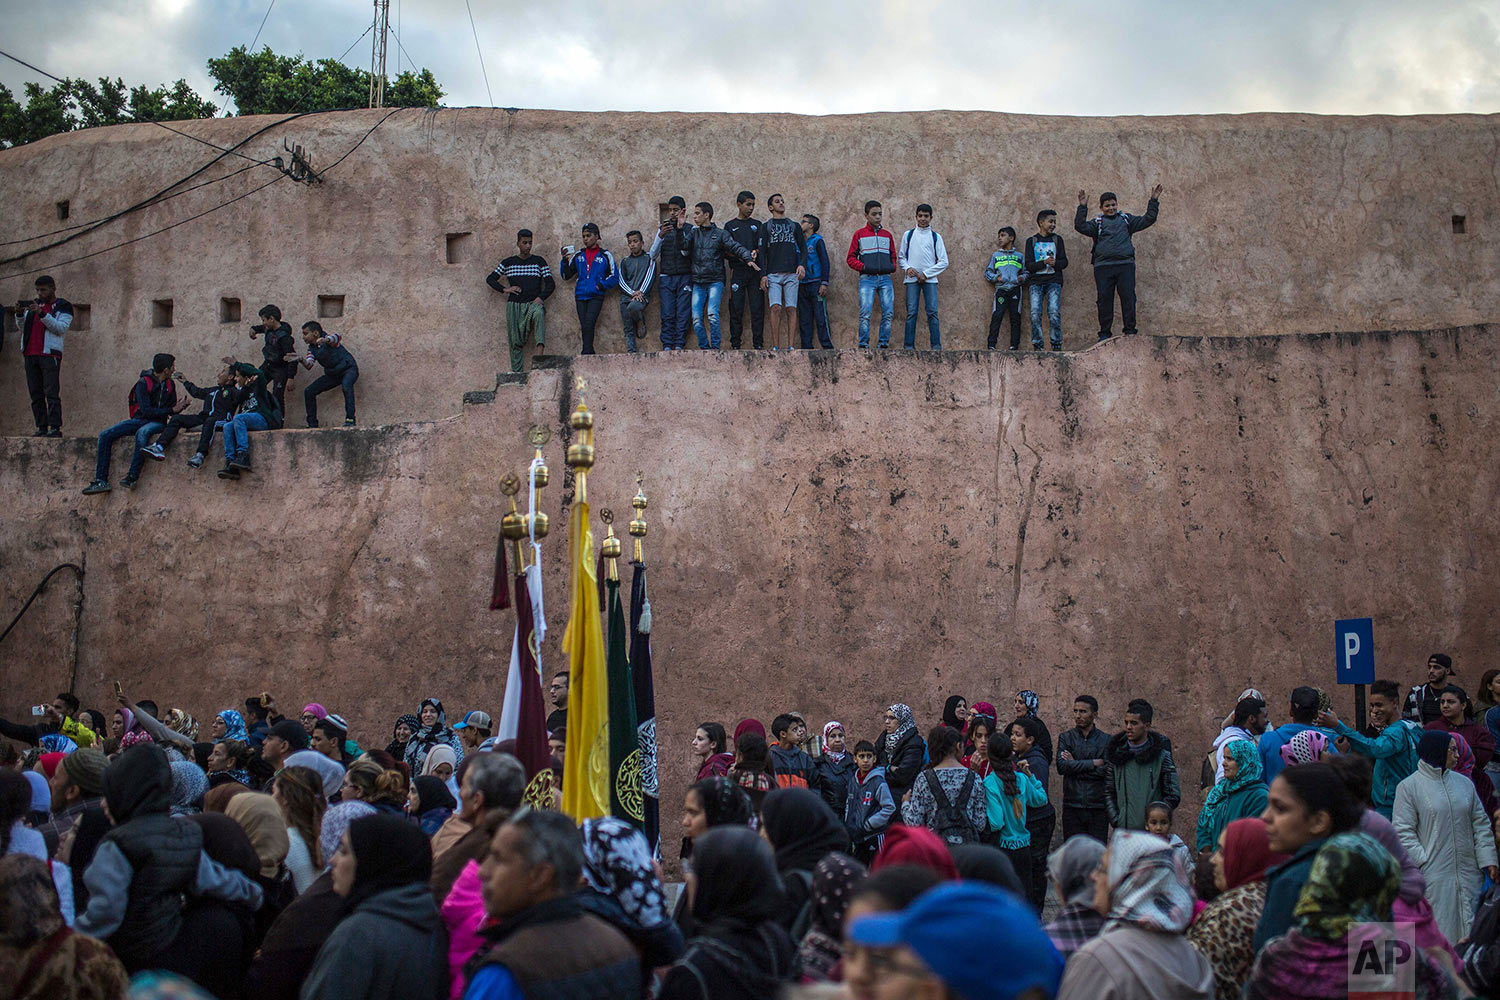 In this Thursday Nov. 30, 2017 photo, people take part in an annual parade celebrating the birth anniversary of Prophet Muhammad, in Sale, near Rabat, Morocco. (AP Photo/Mosa'ab Elshamy)